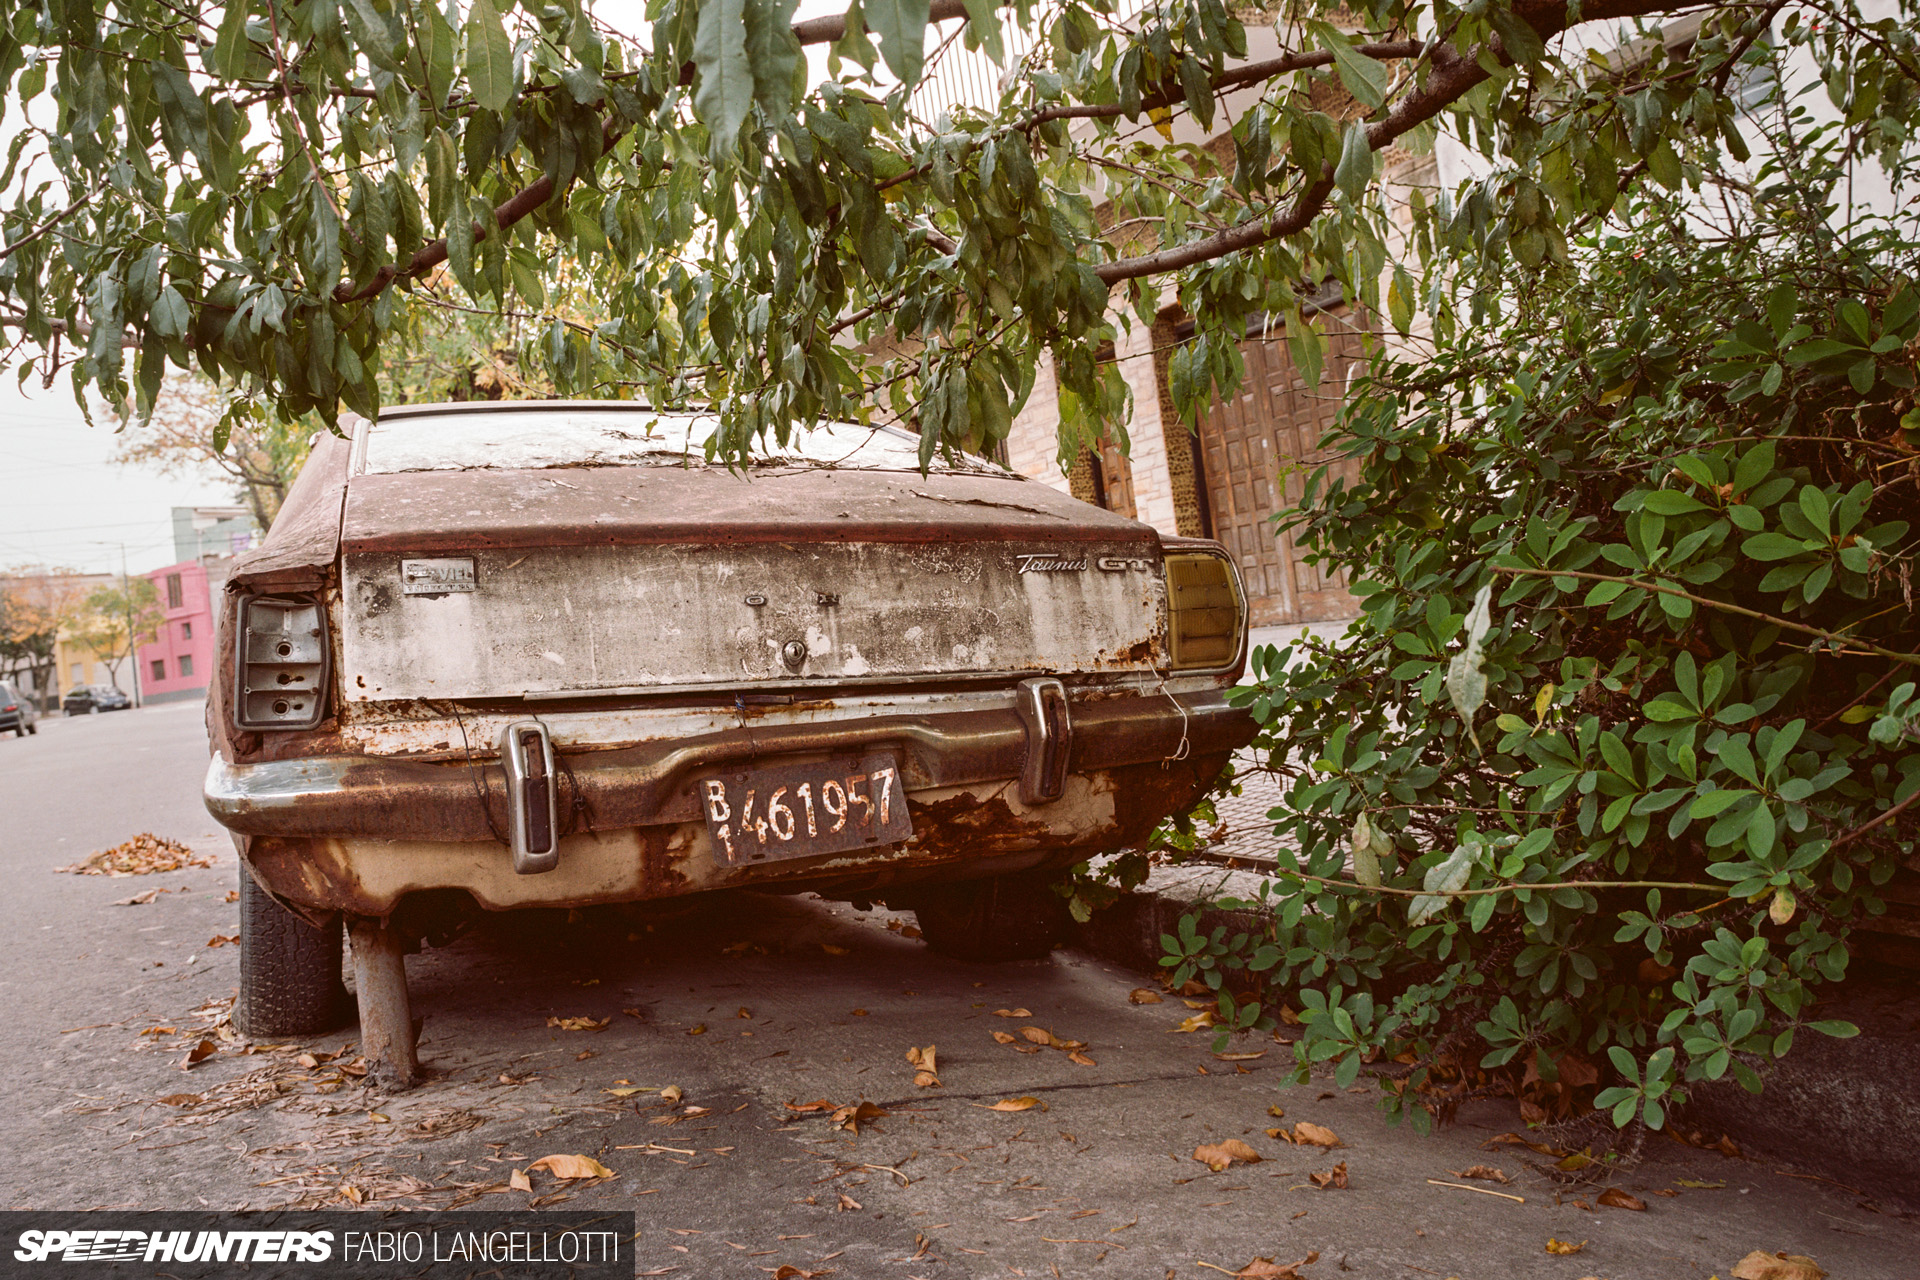 The Derelicts Of BuenosAires